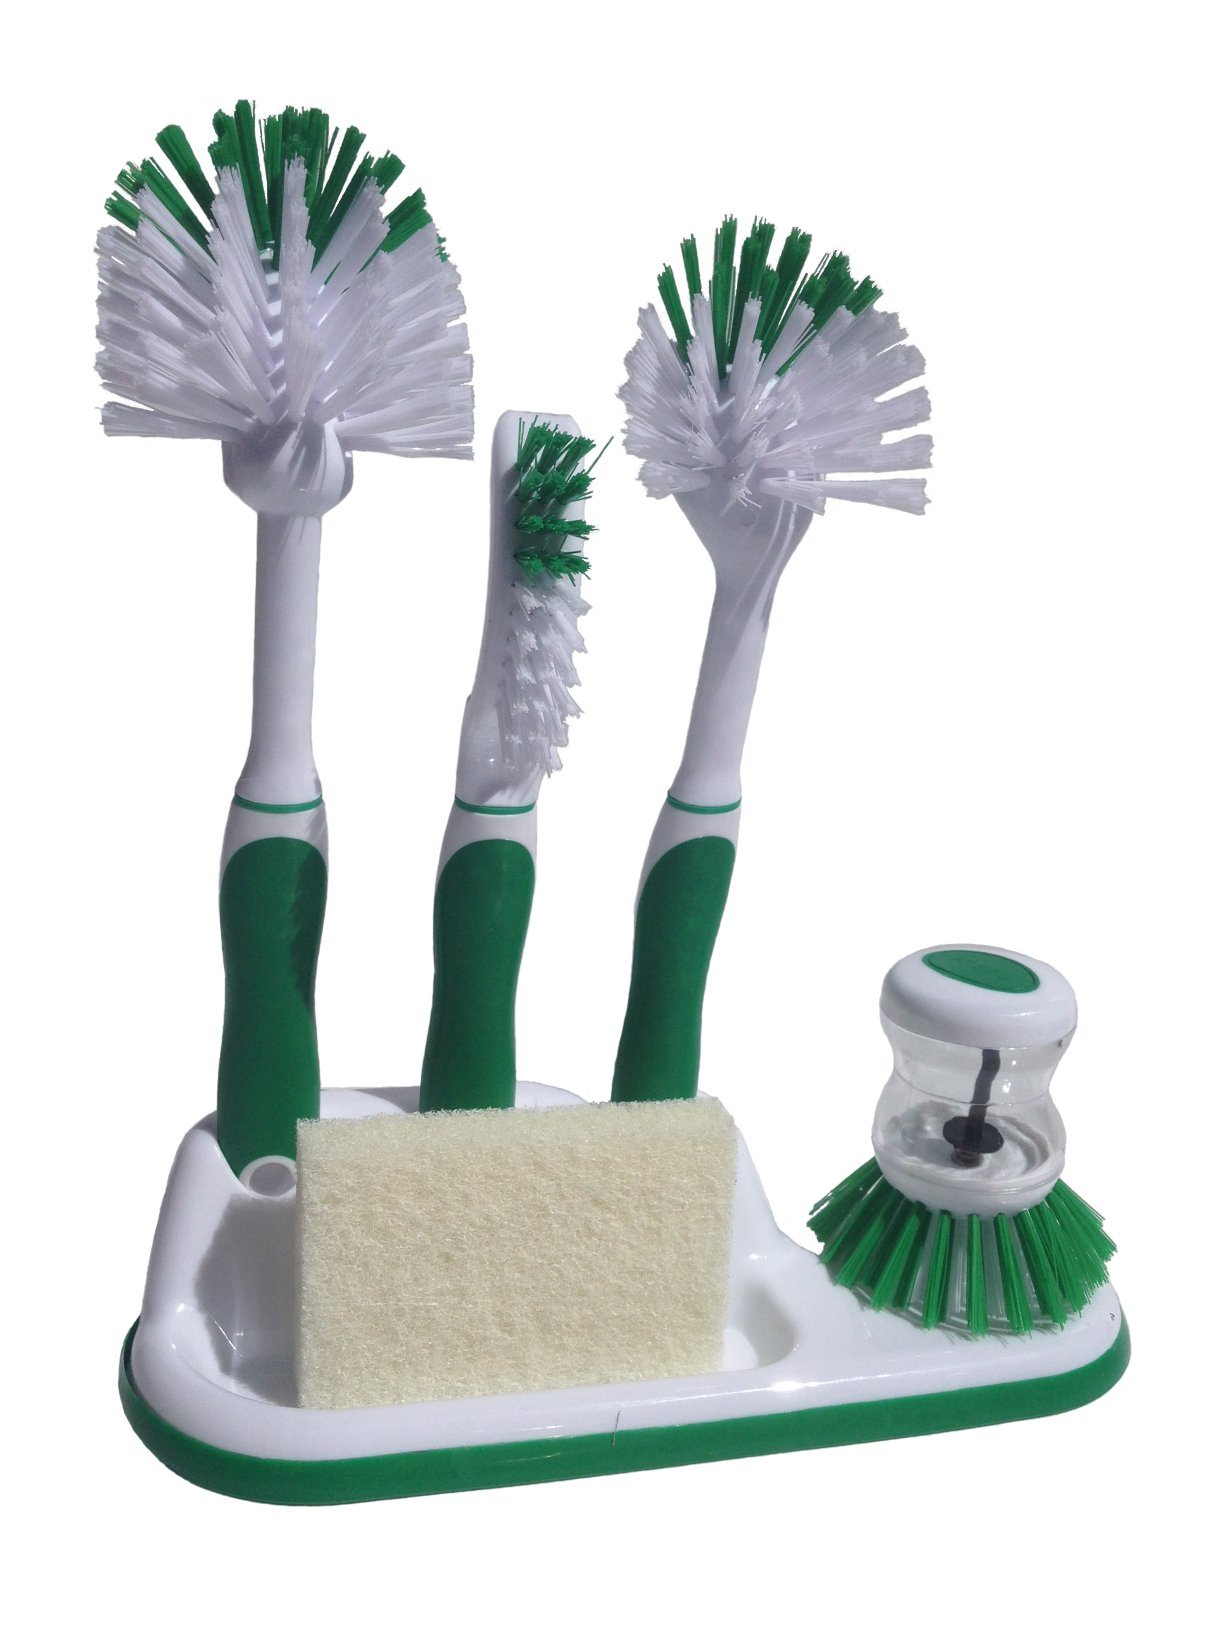 Long Lasting Compact Big Brush to Clean Toilet 99.9/% Germs Killer 2-in-1 Toilet Brush Supplementary Drip Tray for Drainage Easy Storage Toilet Brush Vila Small Brush to Clean Grooves and Corners